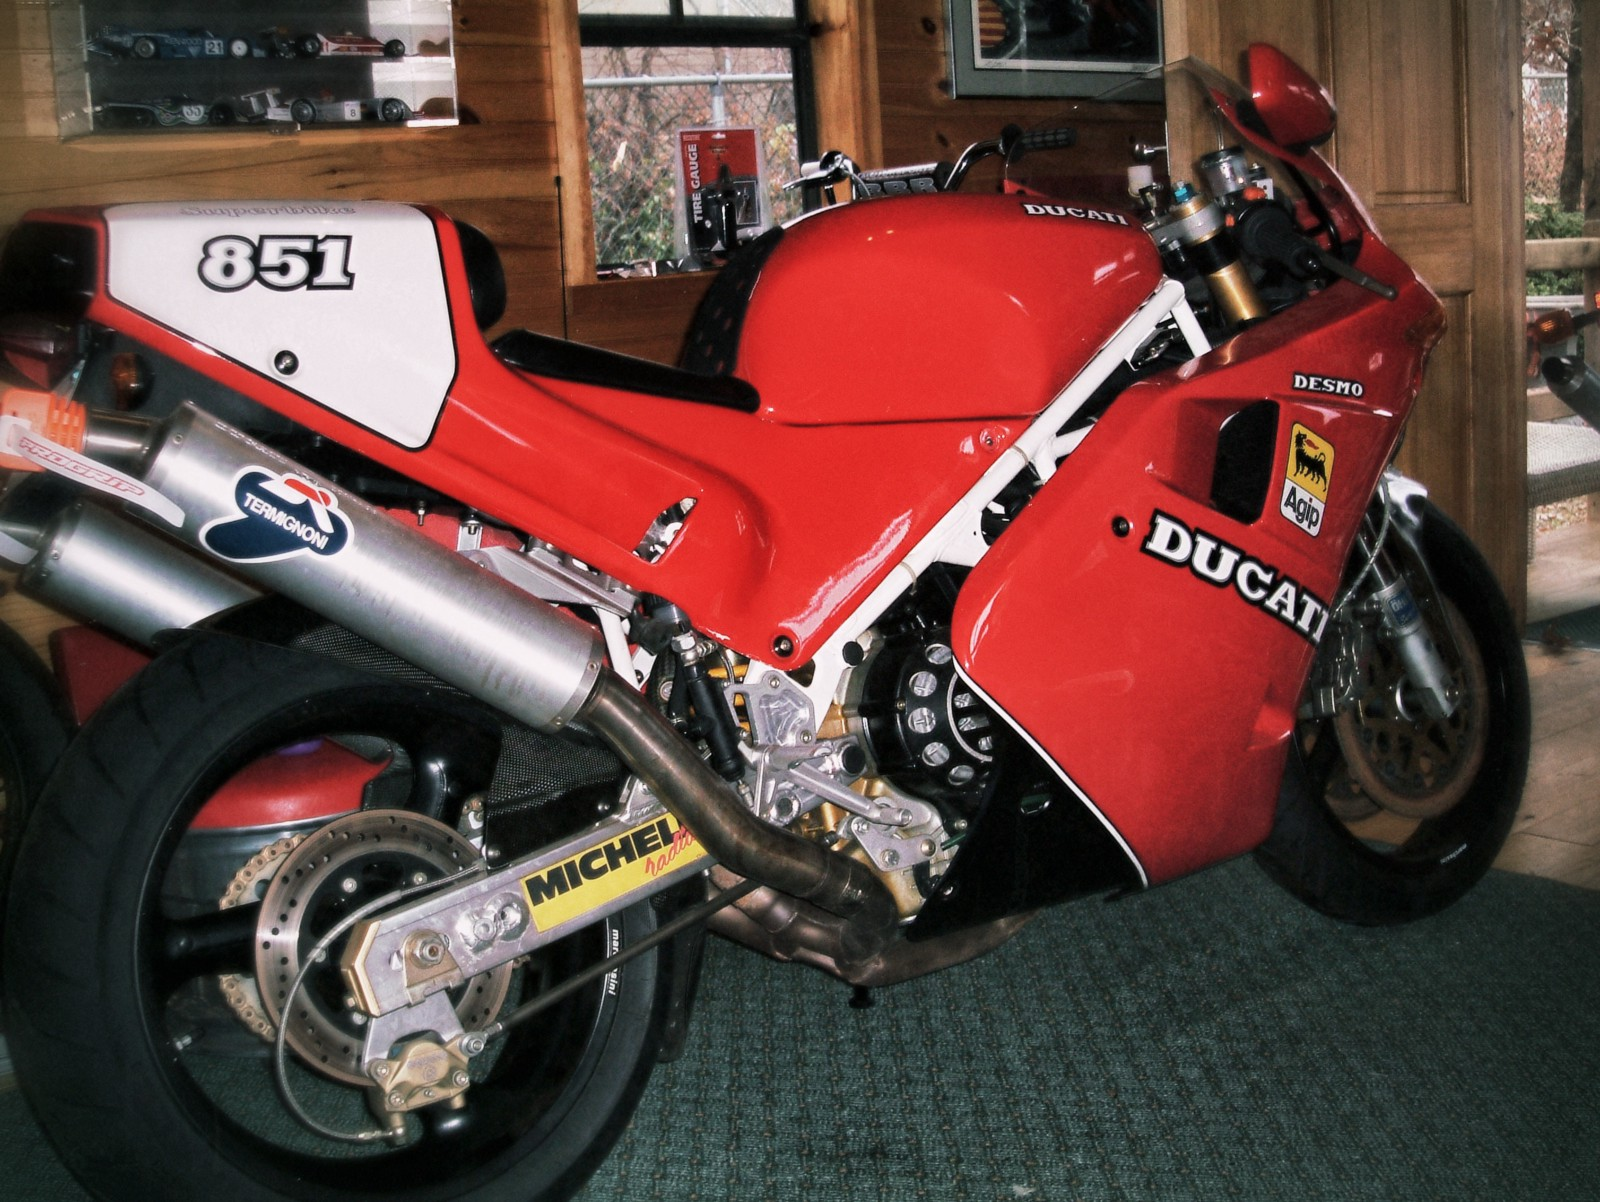 A rare motorcycle indeed: a 1991 Ducati 851 Sp3